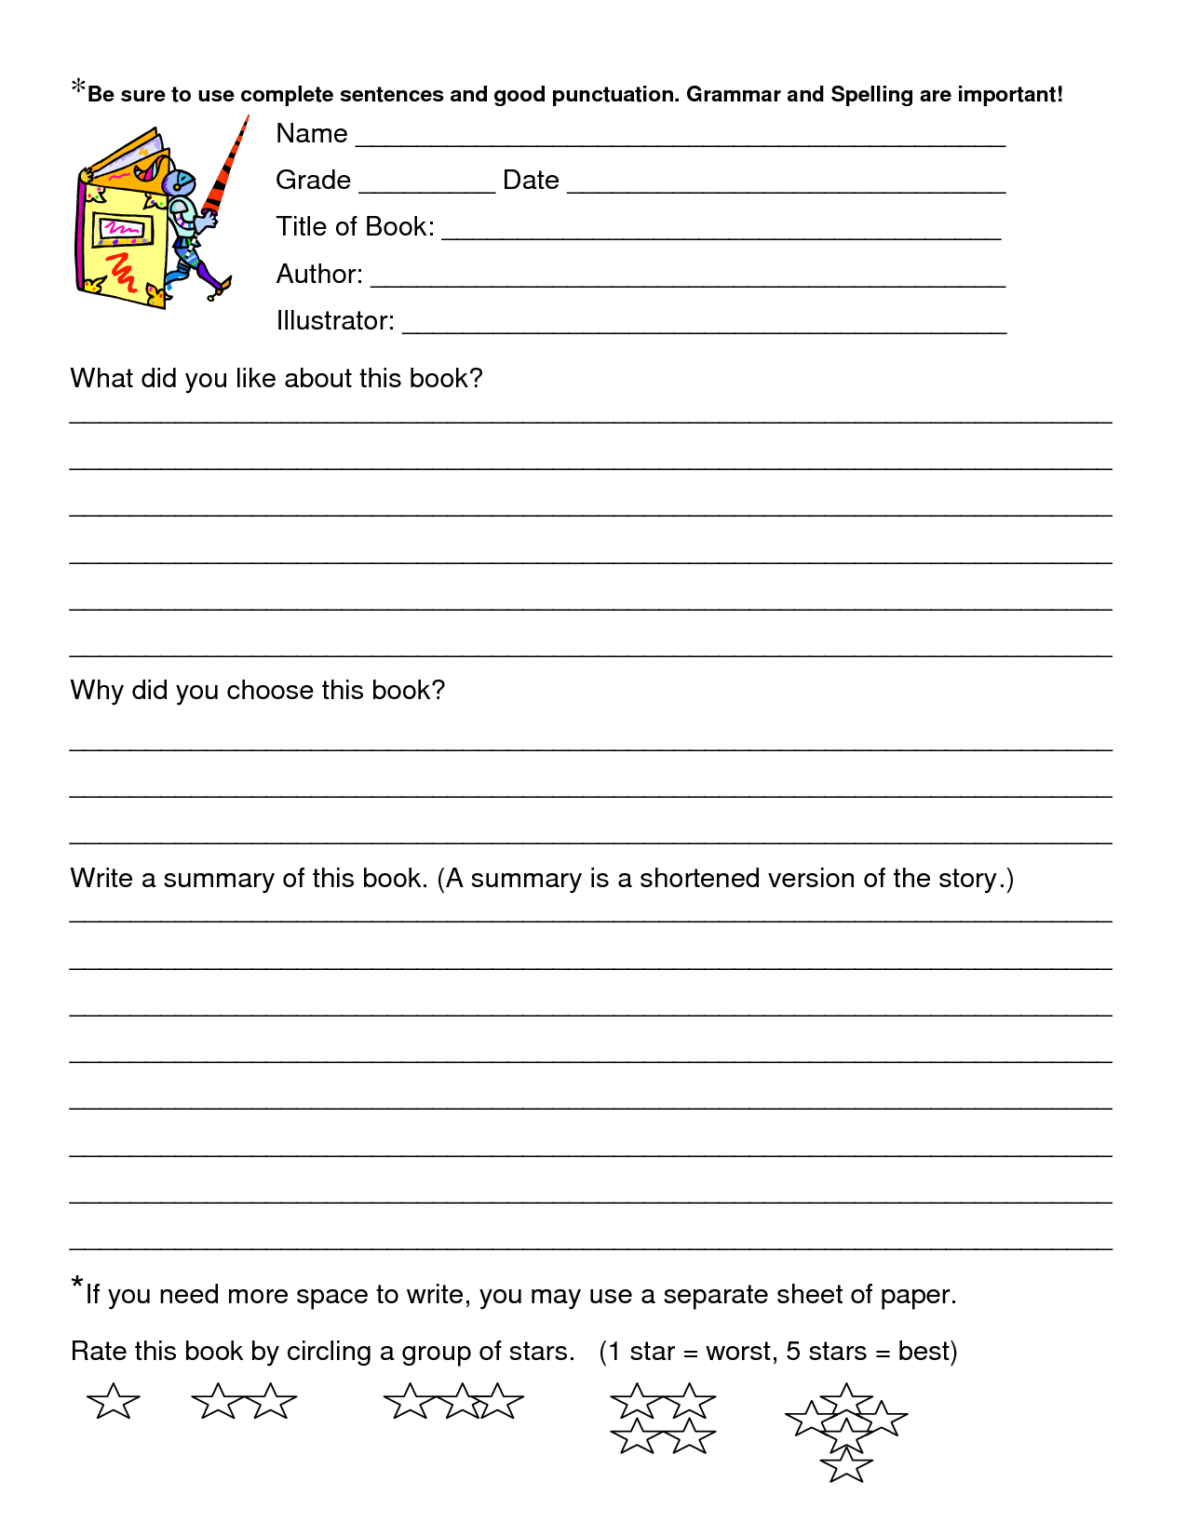 hight resolution of Book Review Worksheet Grade 5   Printable Worksheets And with Book Report  Template 6Th Grade   Book report templates